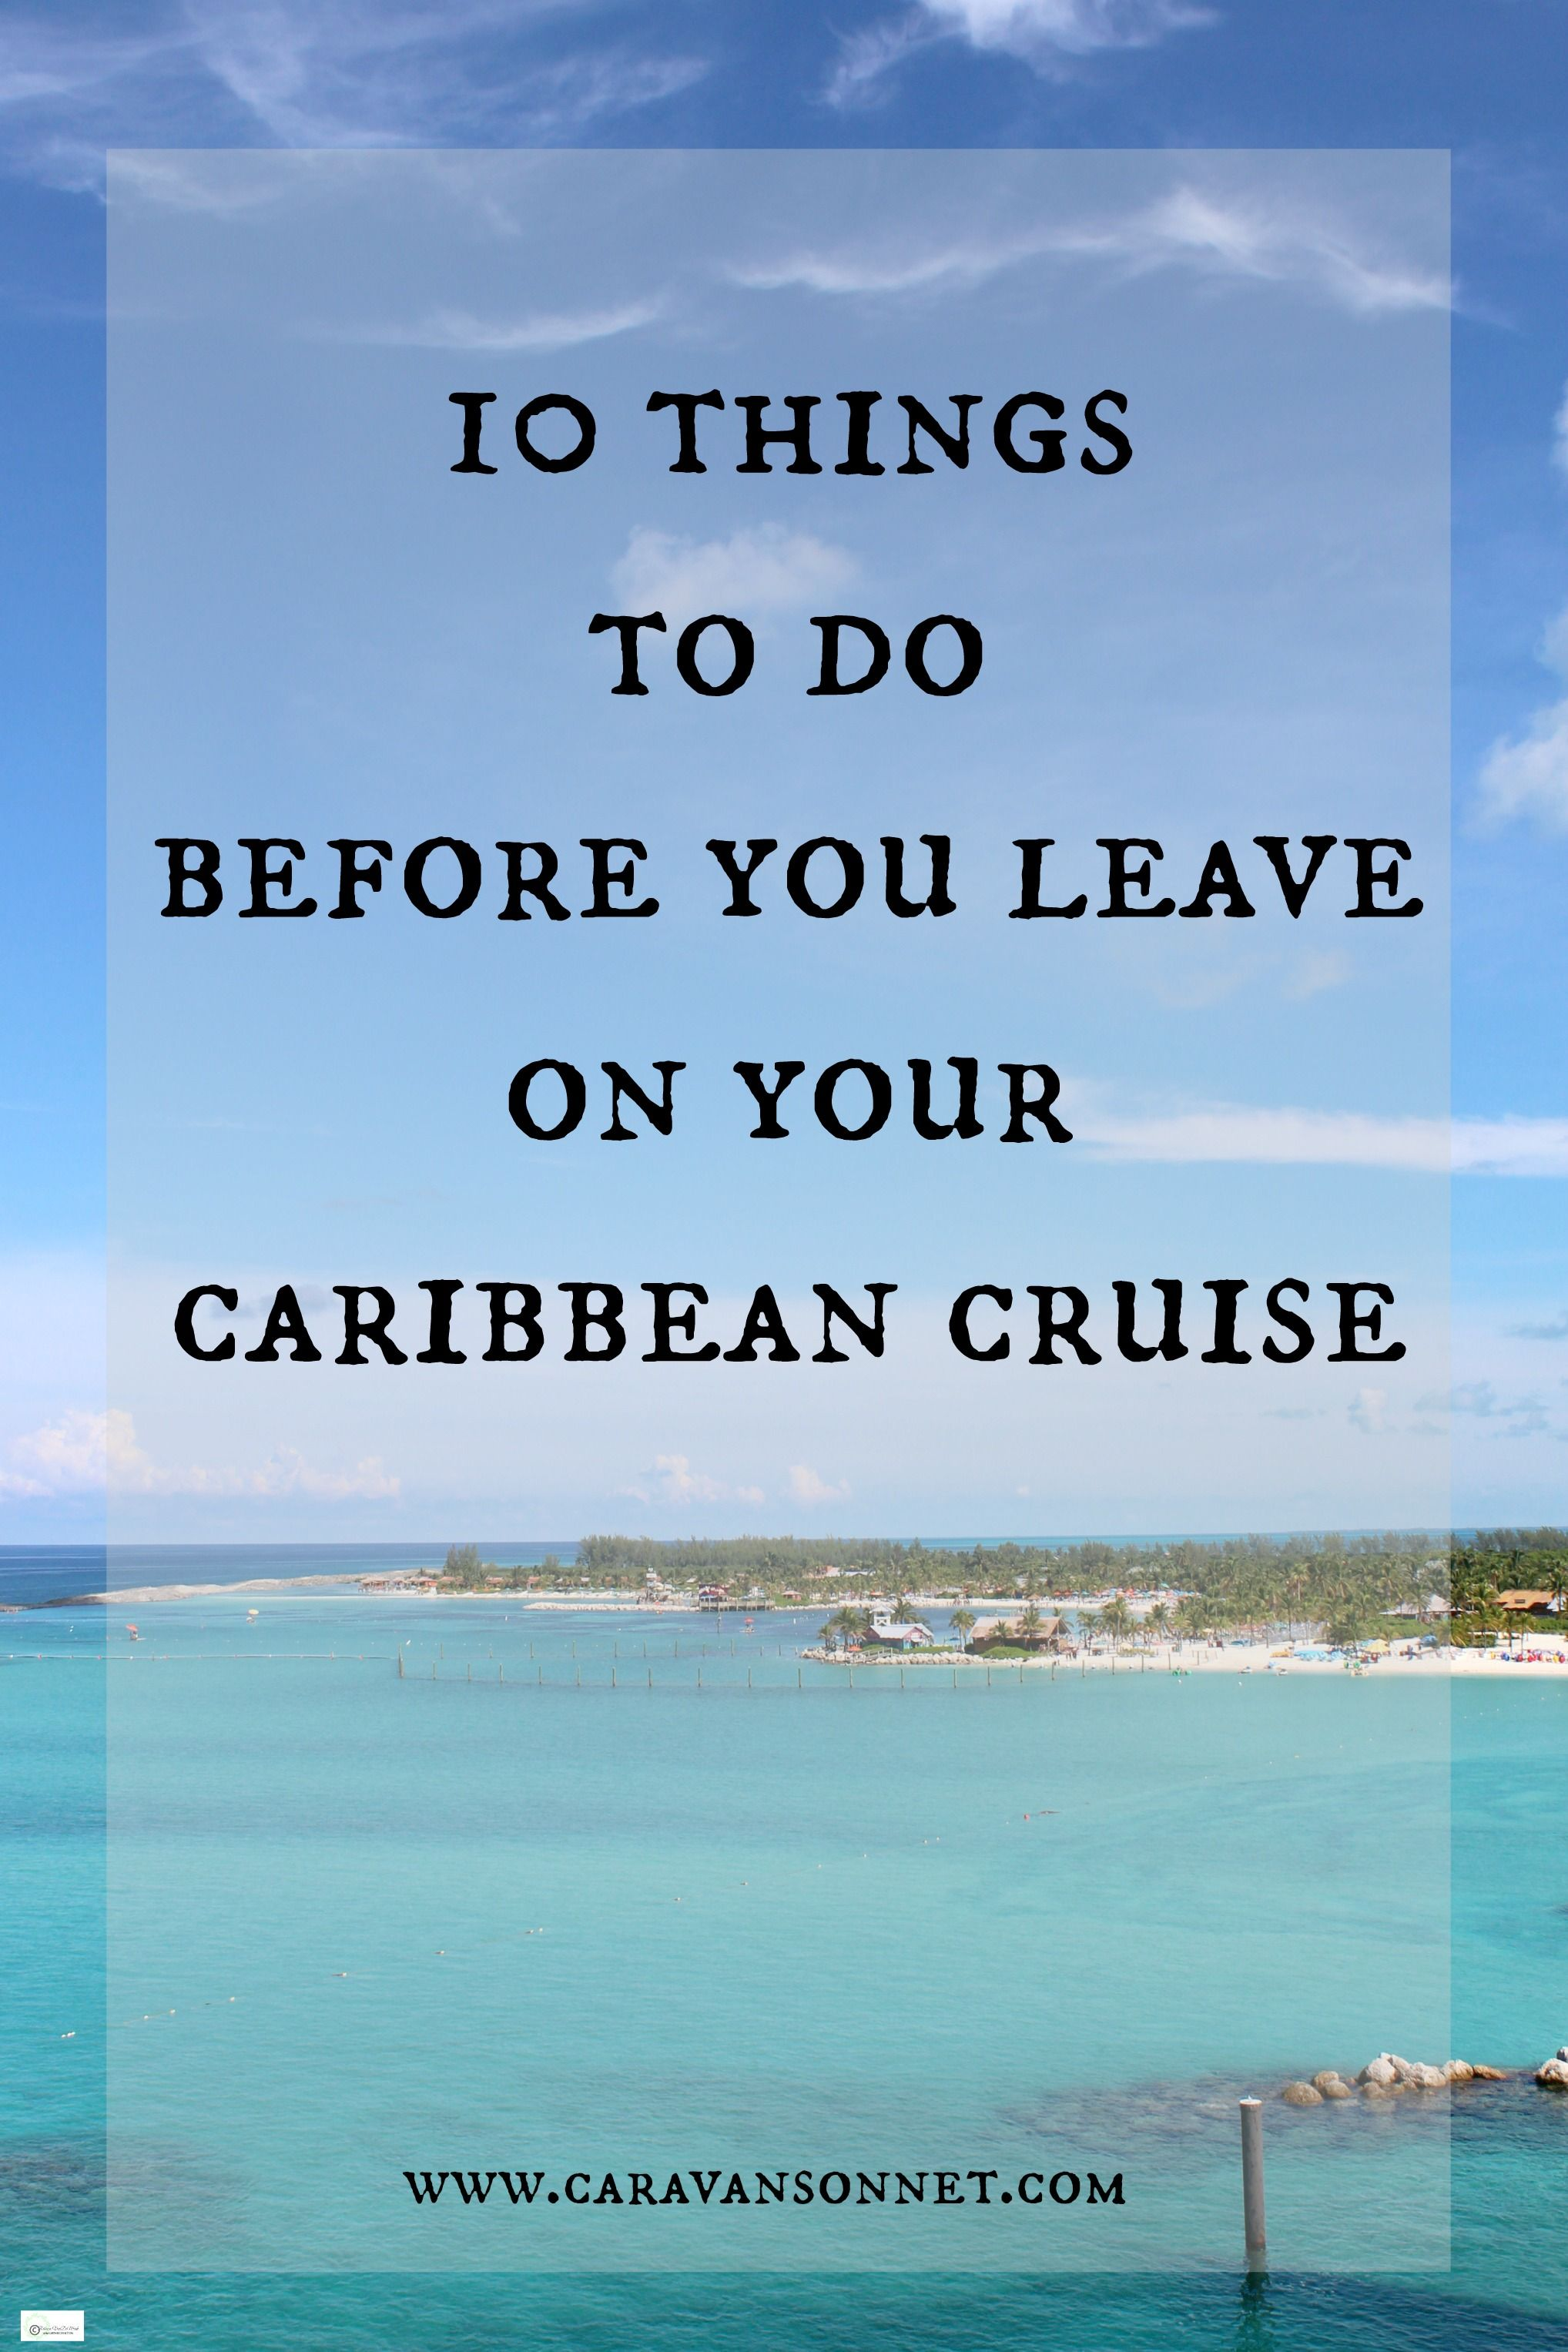 Things To Do Before You Leave On Your Caribbean Cruise - 9 things not to bring on your next vacation